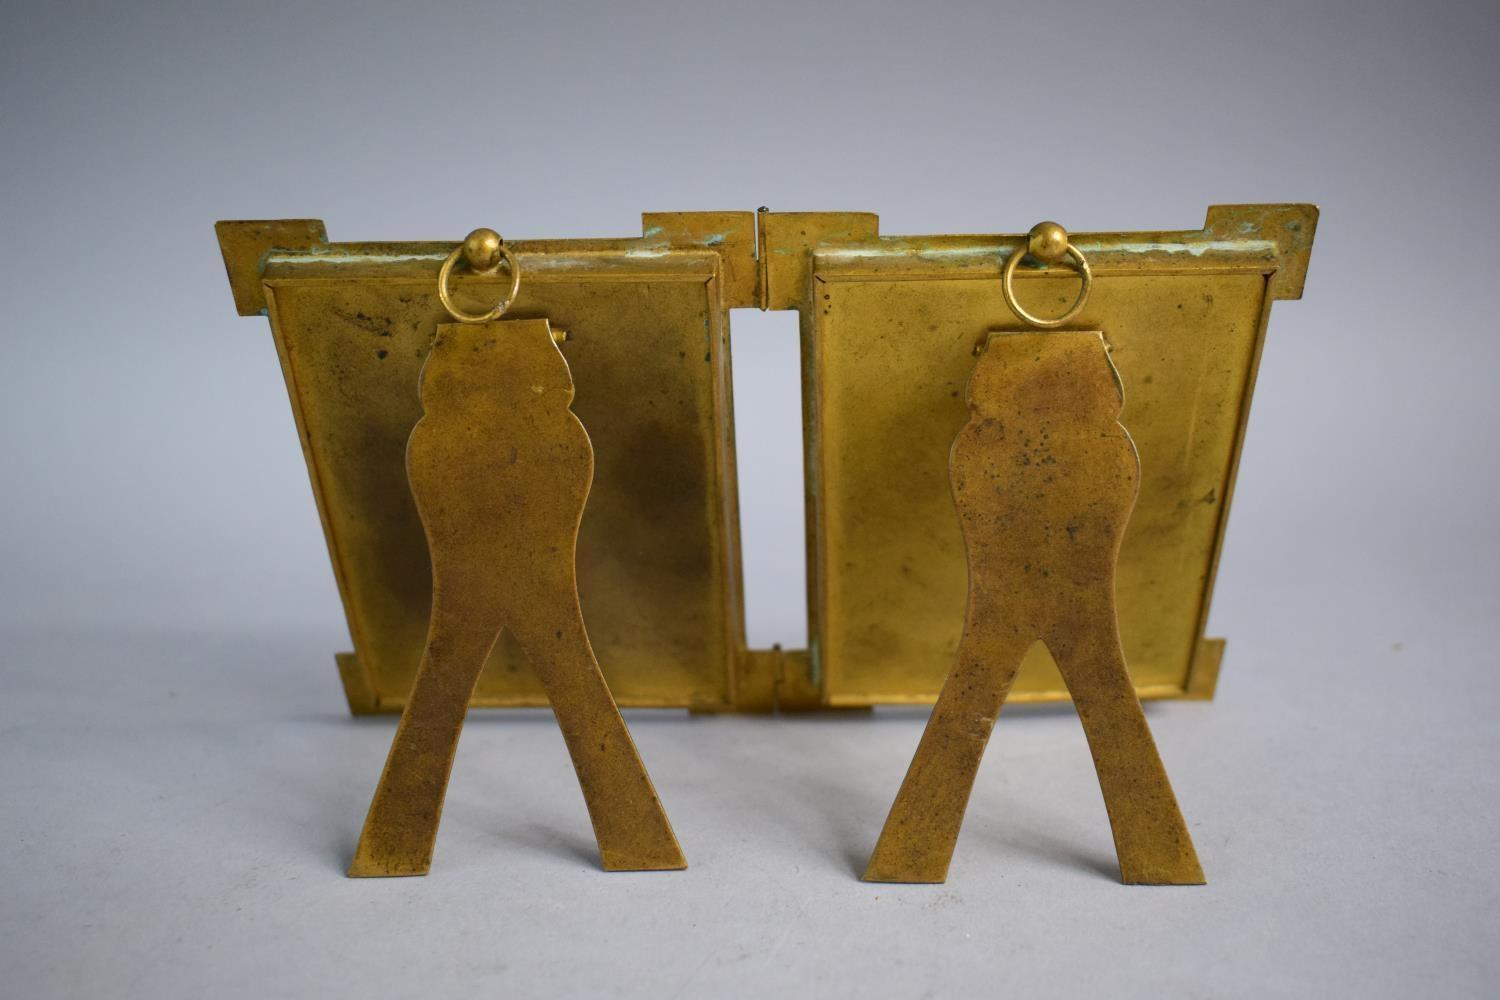 Lot 98 - An Early 20th Century Brass Hinged Pair of Photo Frames with Easel Stands, 11.5cm High